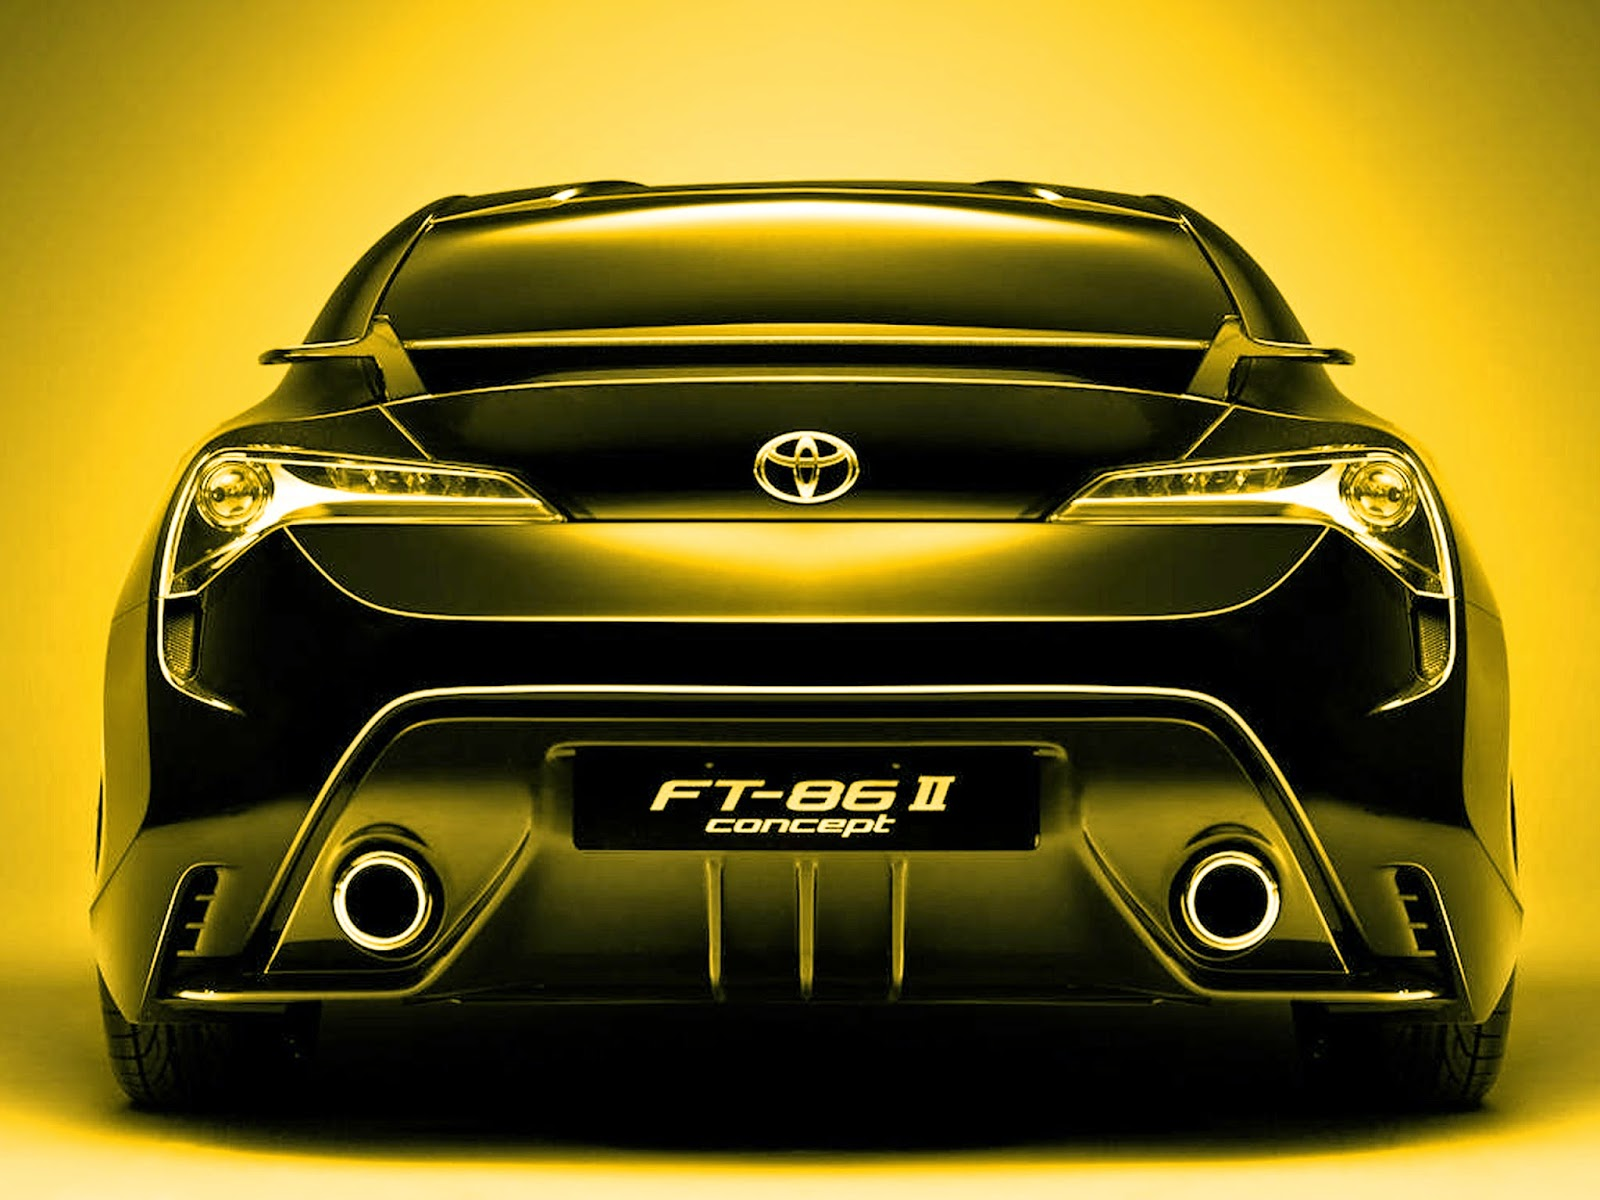 Yellow toyota ft 86 ii concept cars hd wallpaper